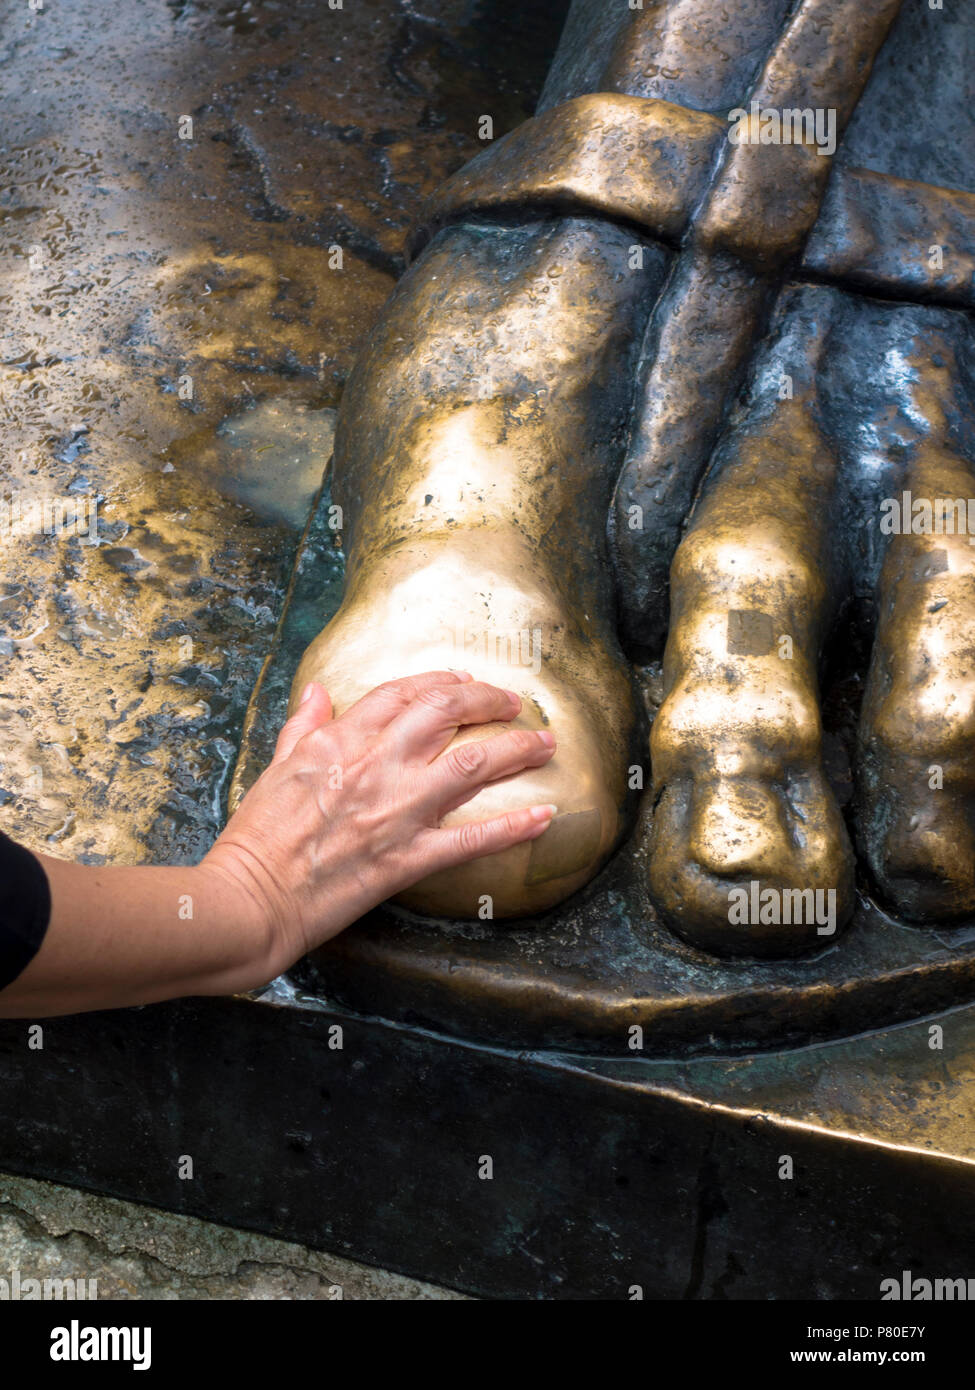 Visitor touching the feet of the statue of Gregory of Nin by Ivan Meštrovic in Split, Croatia. Touching the statue's feet is said to bring good luck. Stock Photo